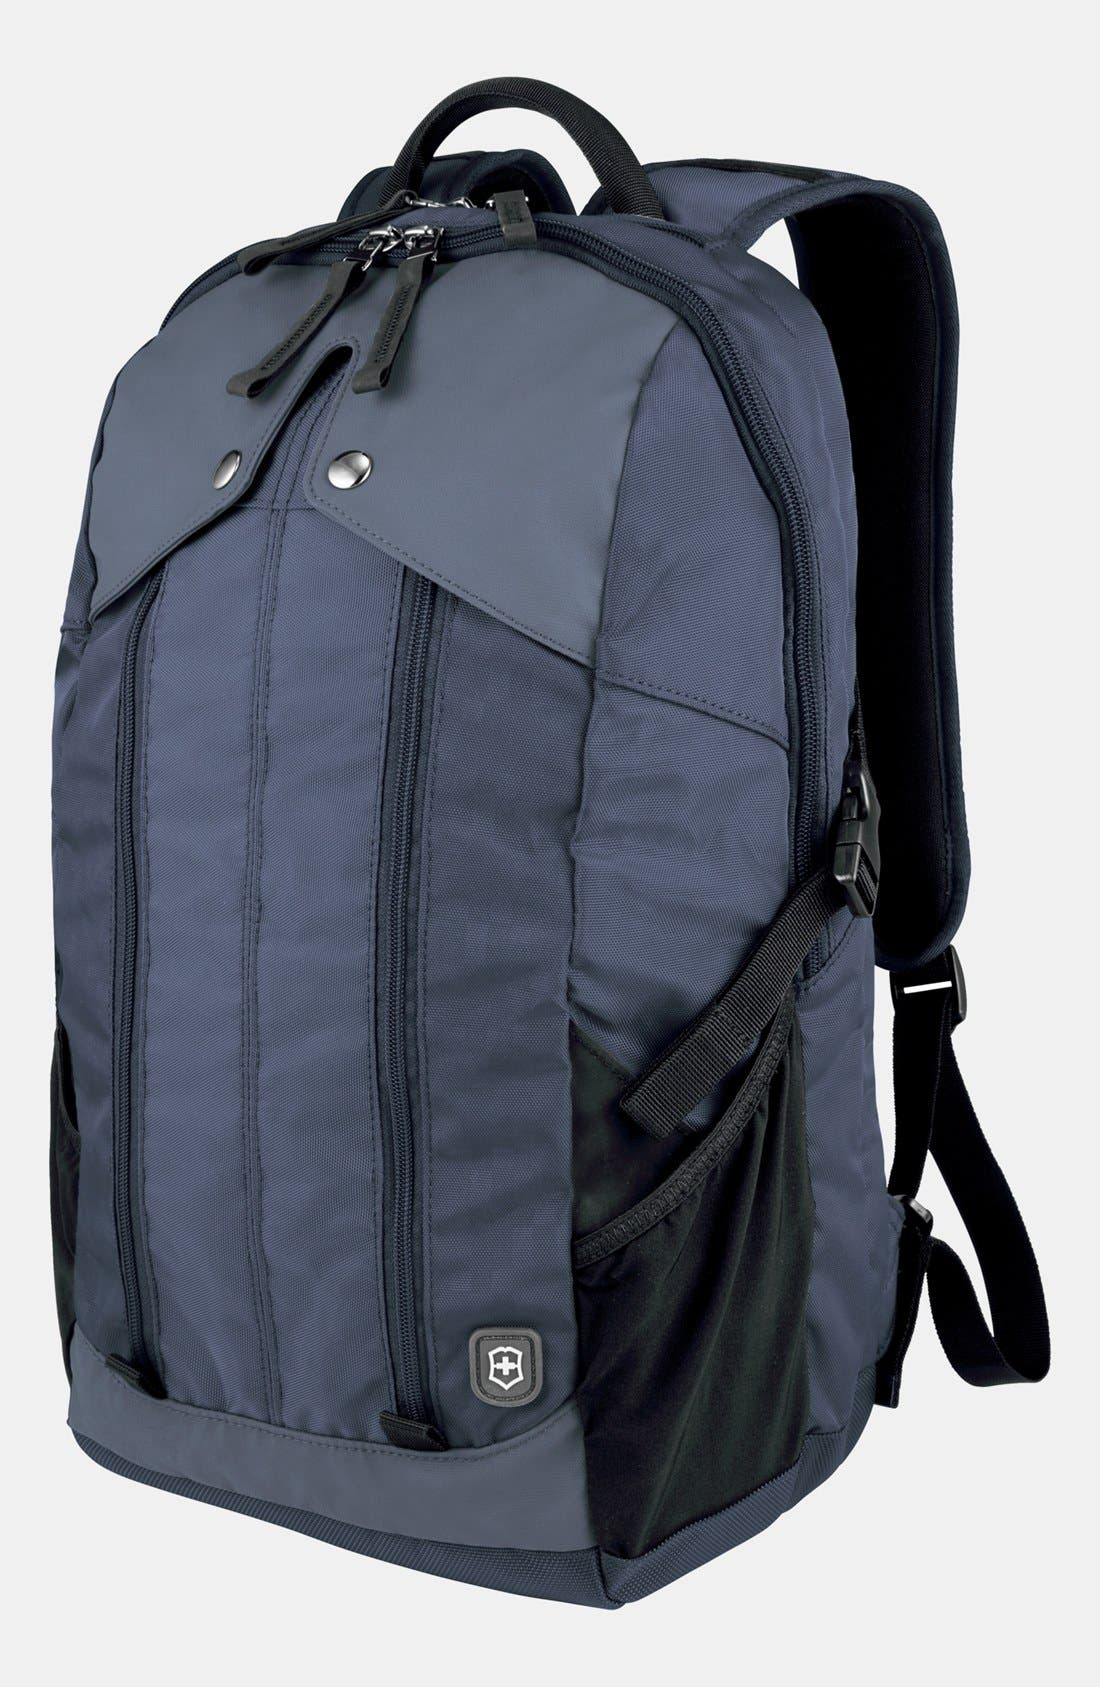 Altmont Backpack,                             Main thumbnail 1, color,                             Navy